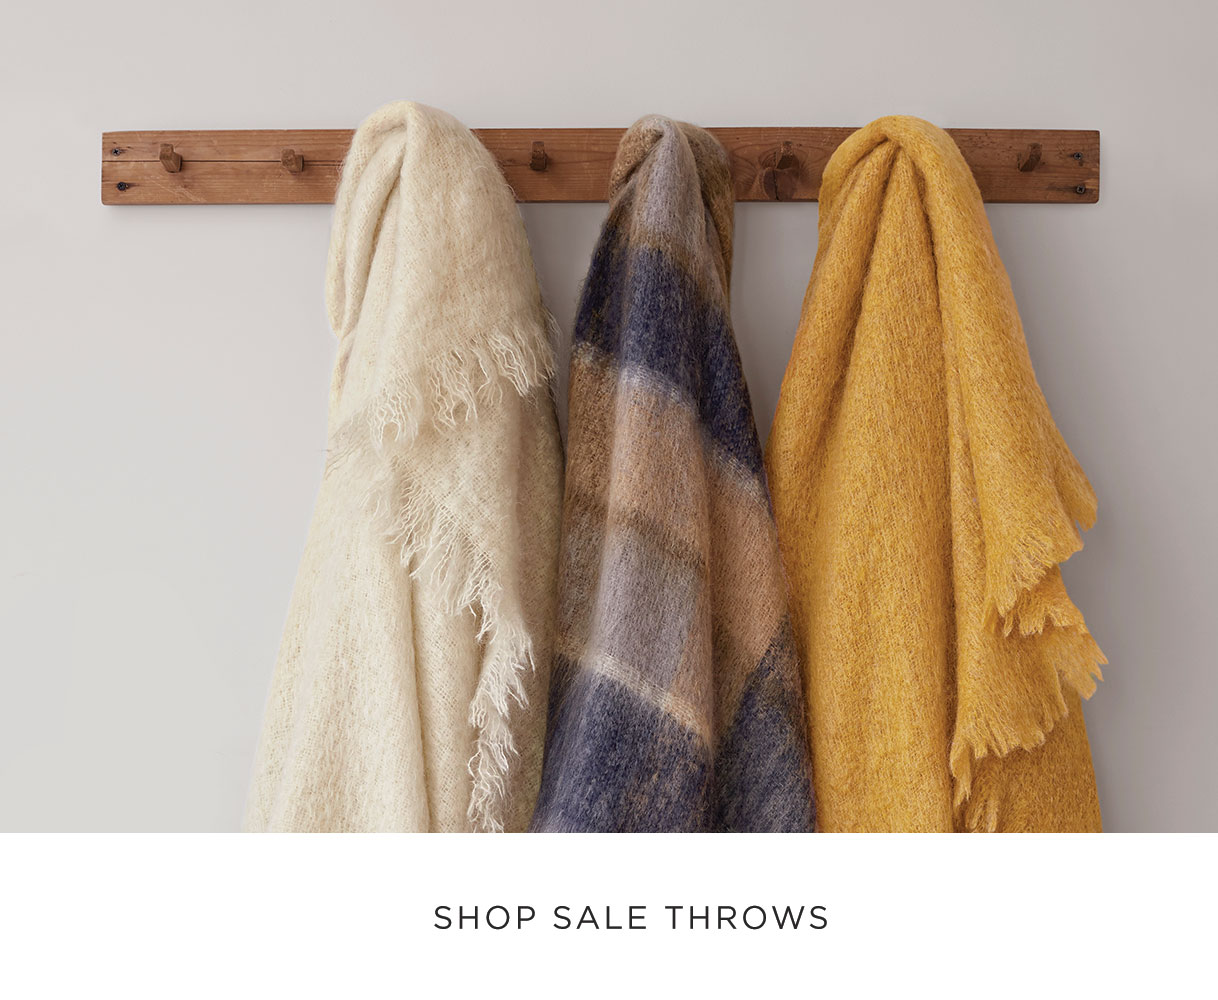 Shop Sale Throws